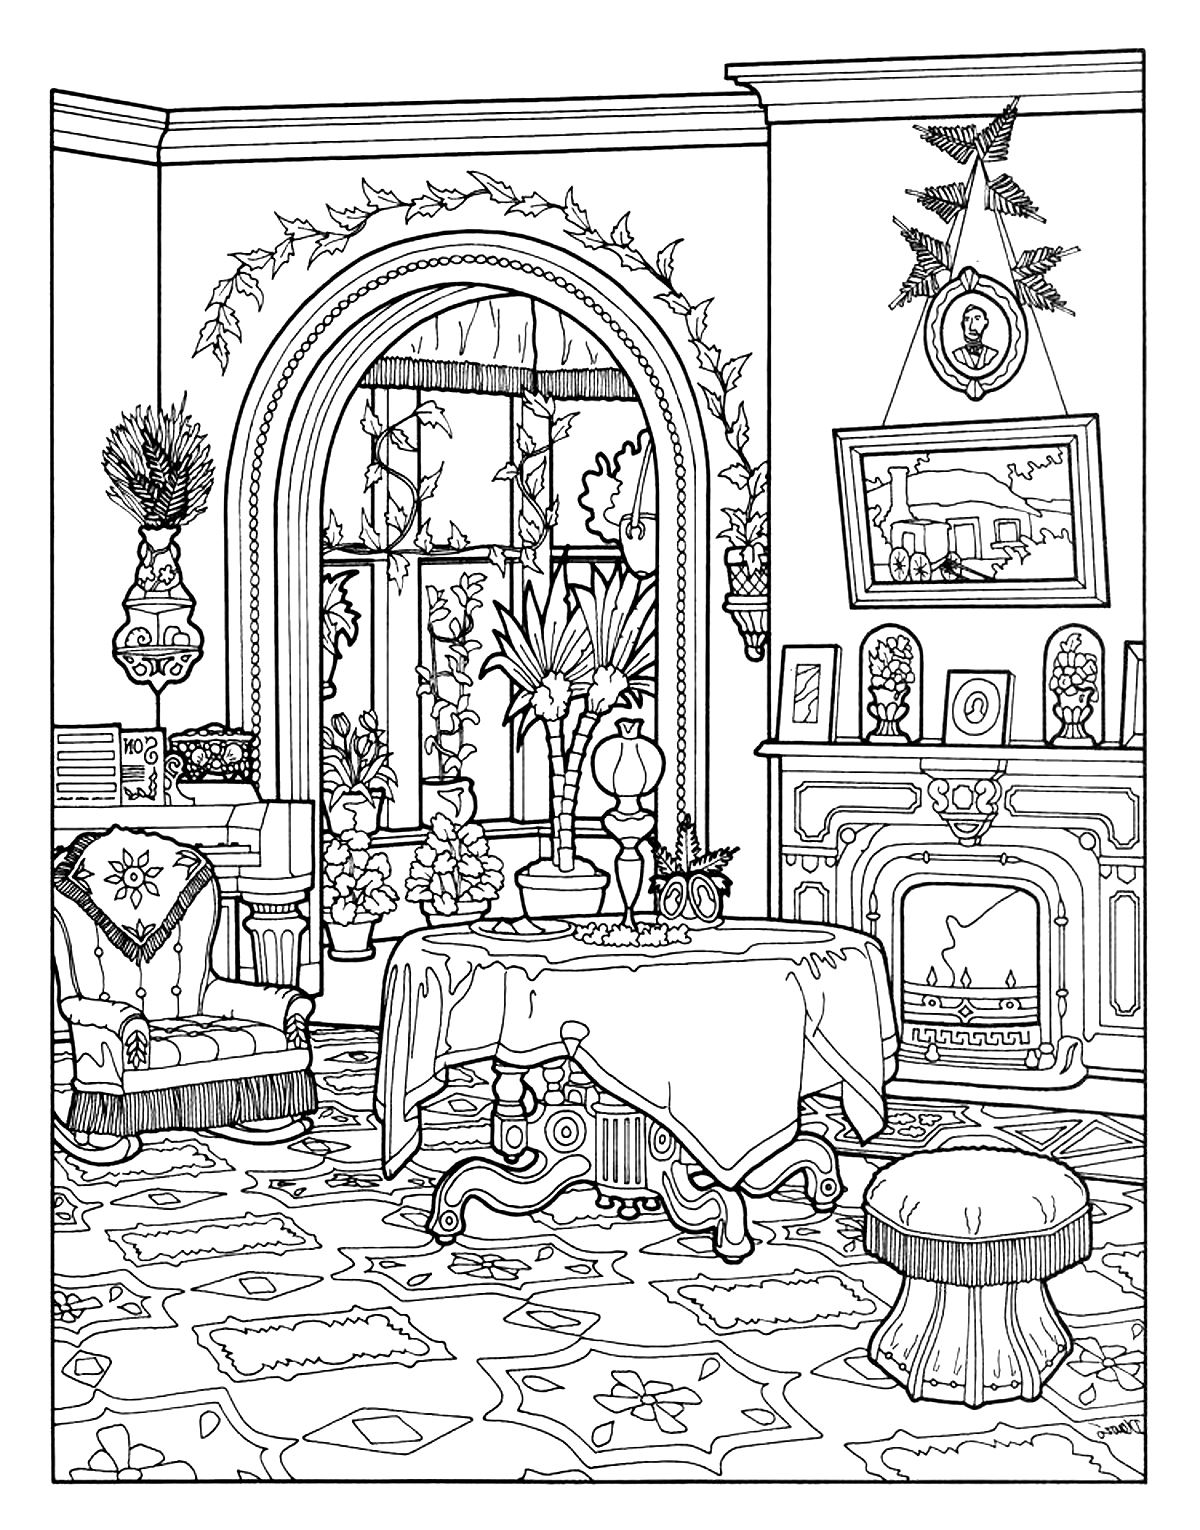 coloring sheets house victorian interior style architecture adult coloring pages coloring house sheets